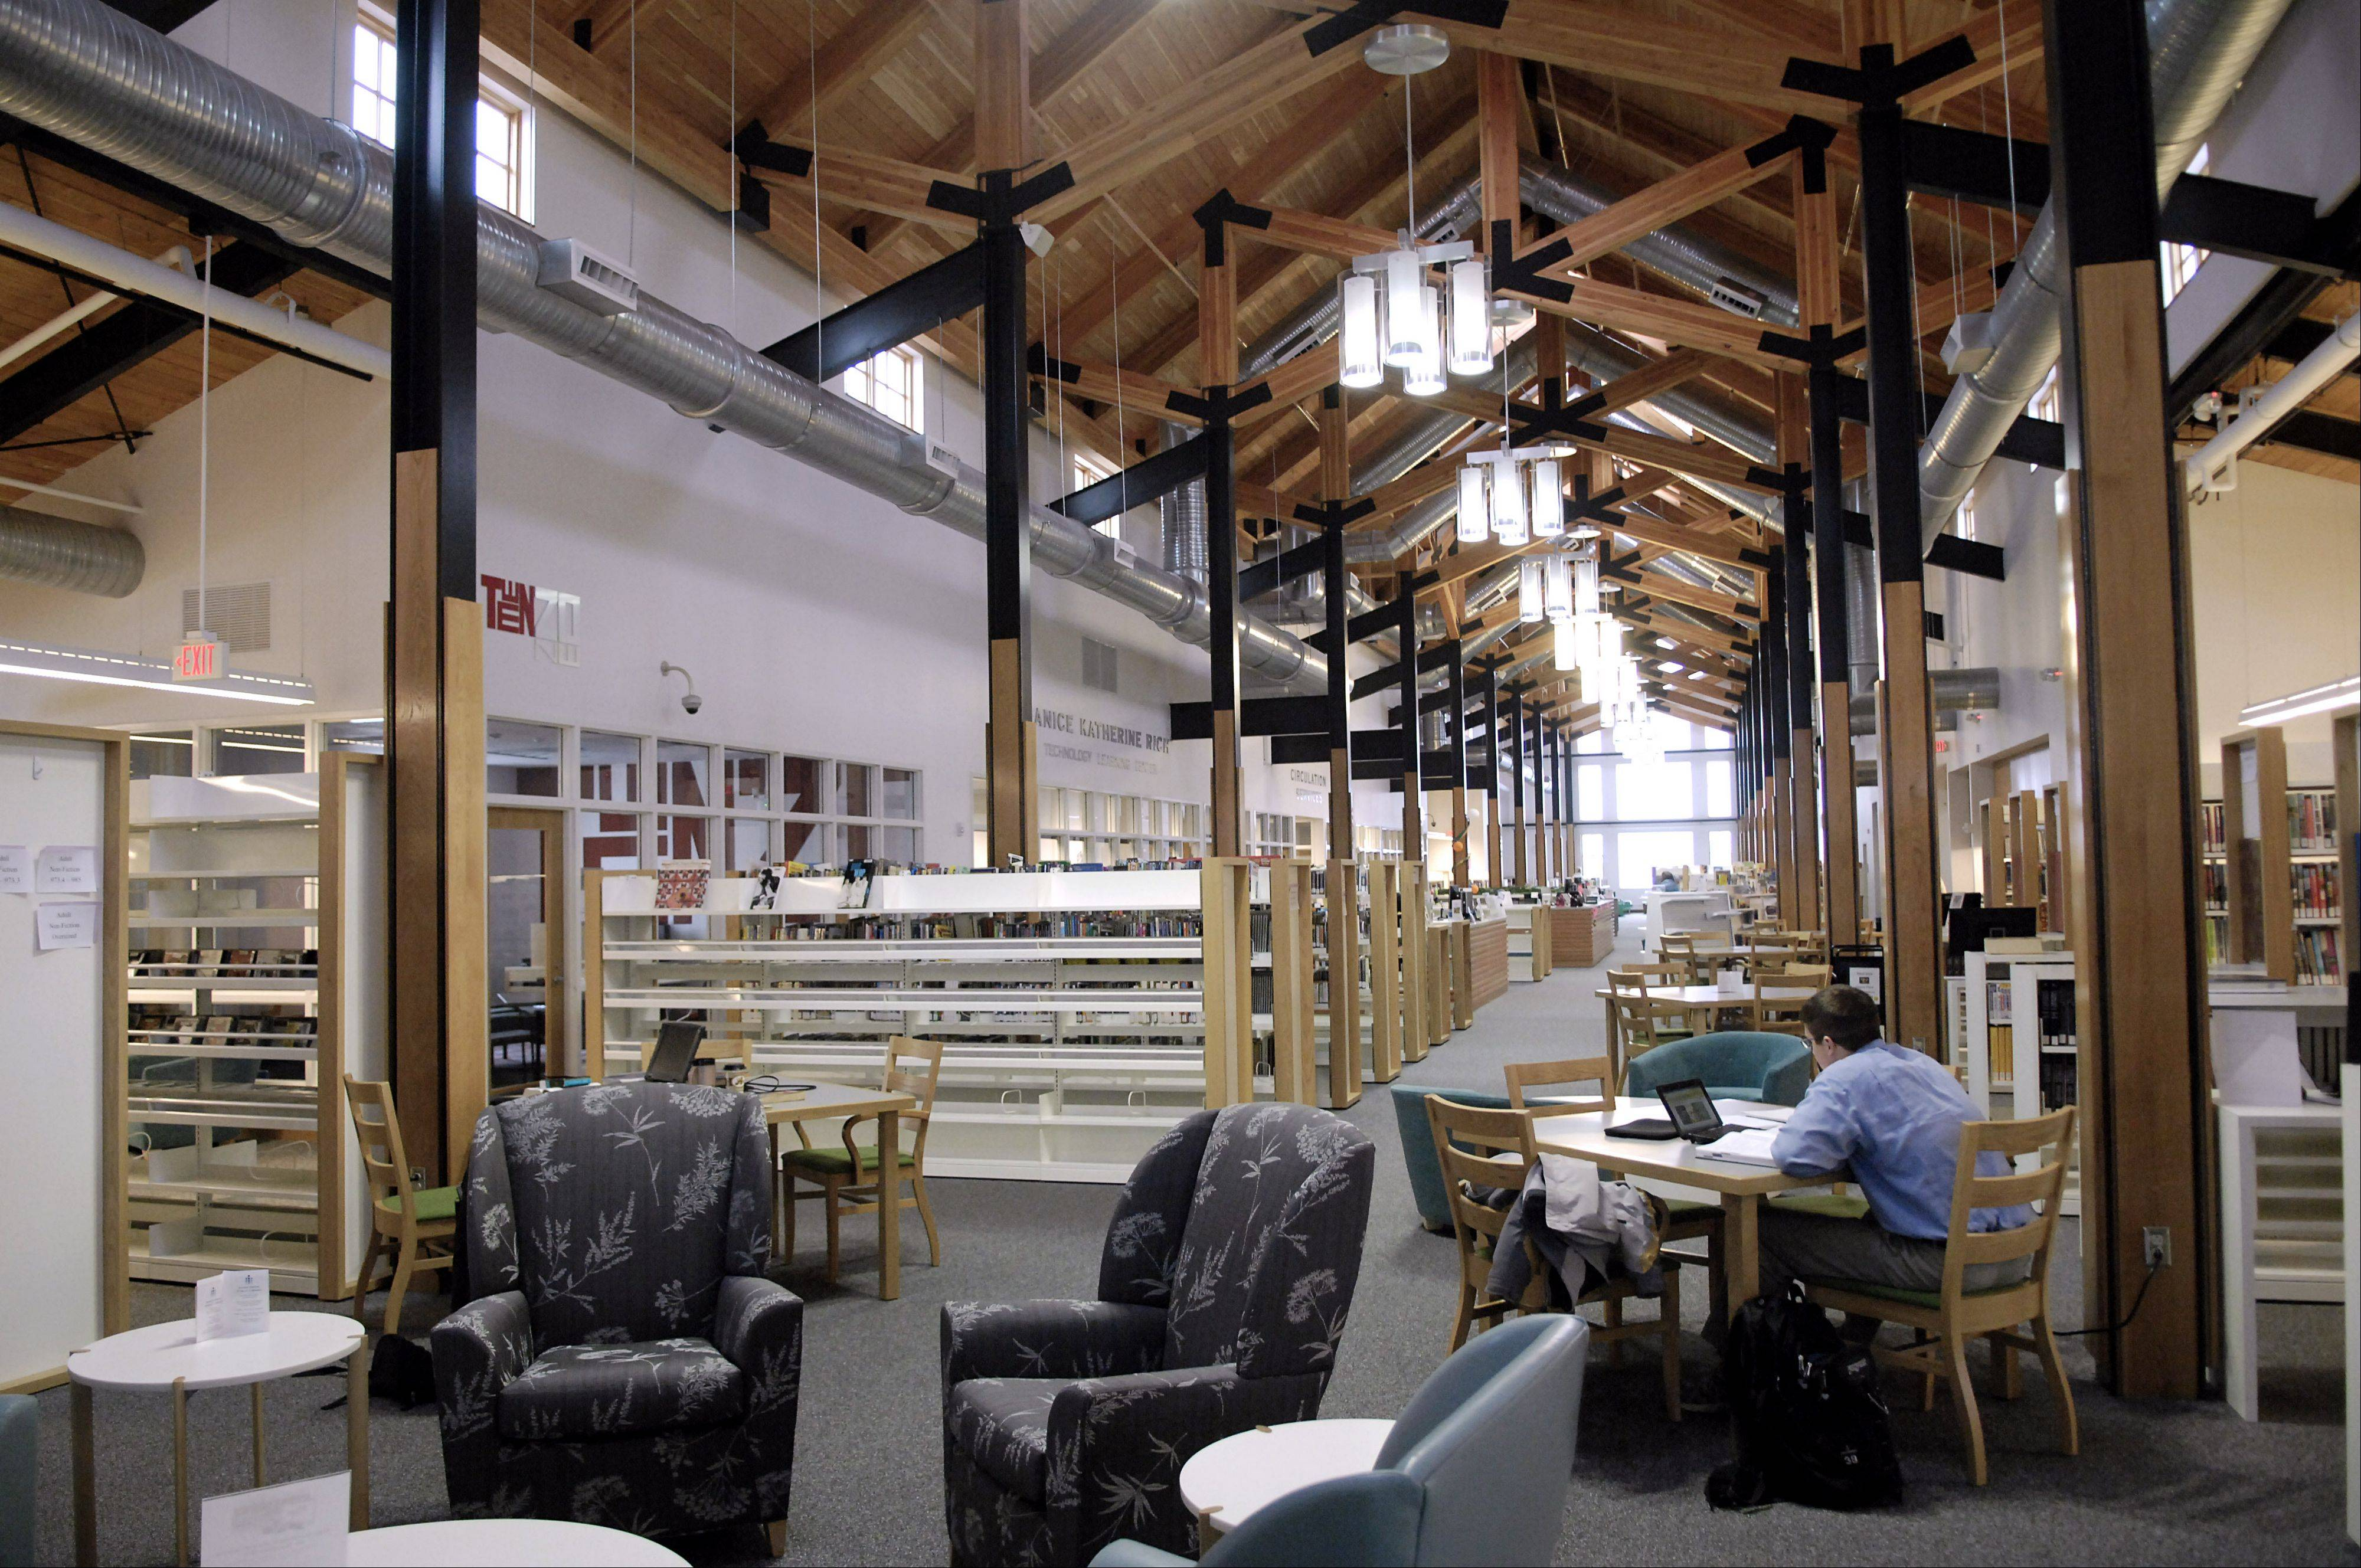 The new Sugar Grove Library opened in 2009.